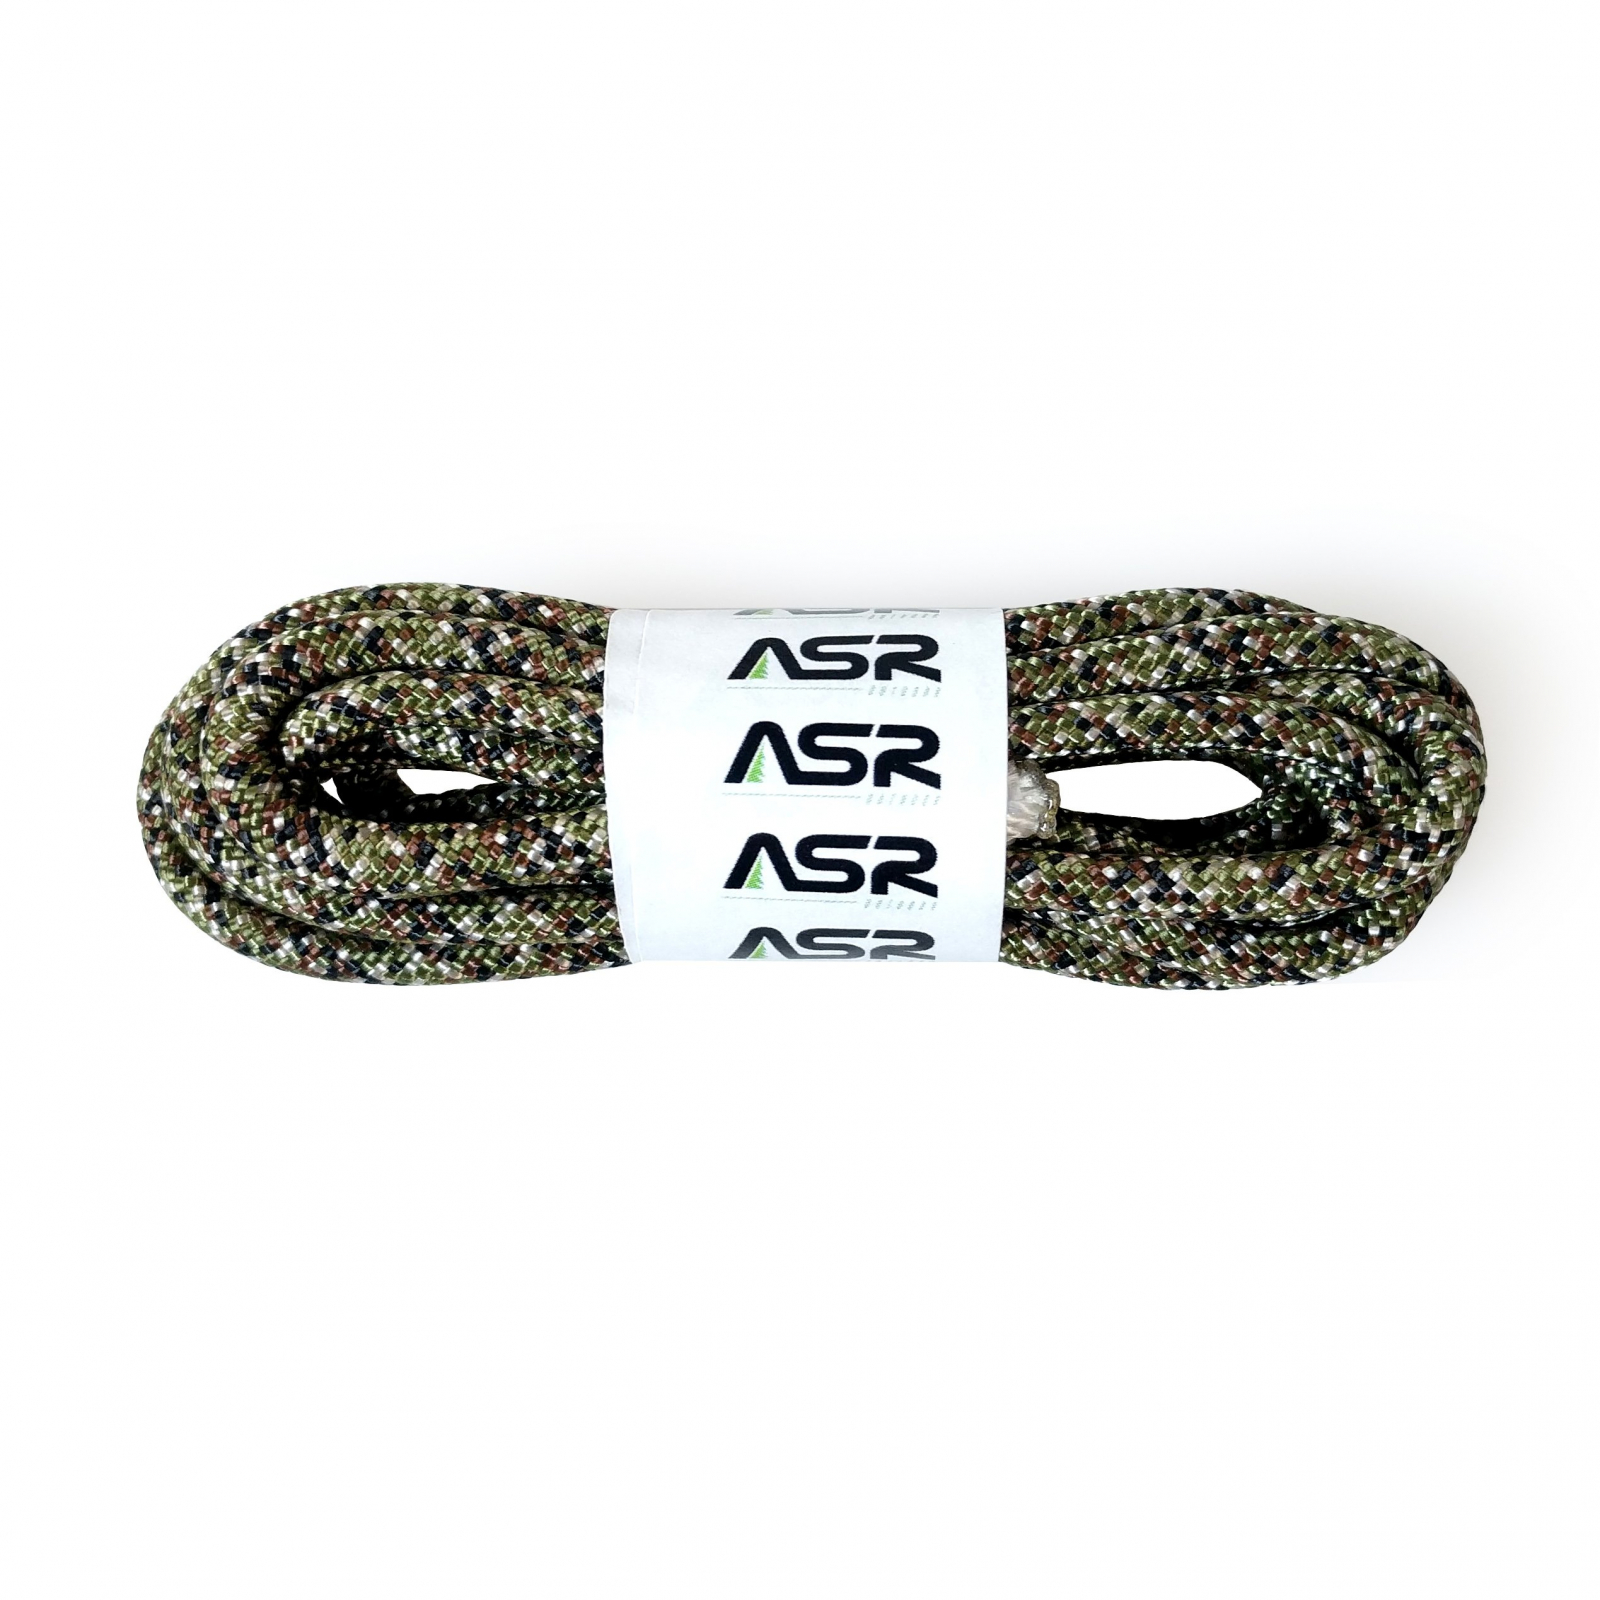 550lbs Strength Survival Paracord Rope Woodland Camo - 50ft